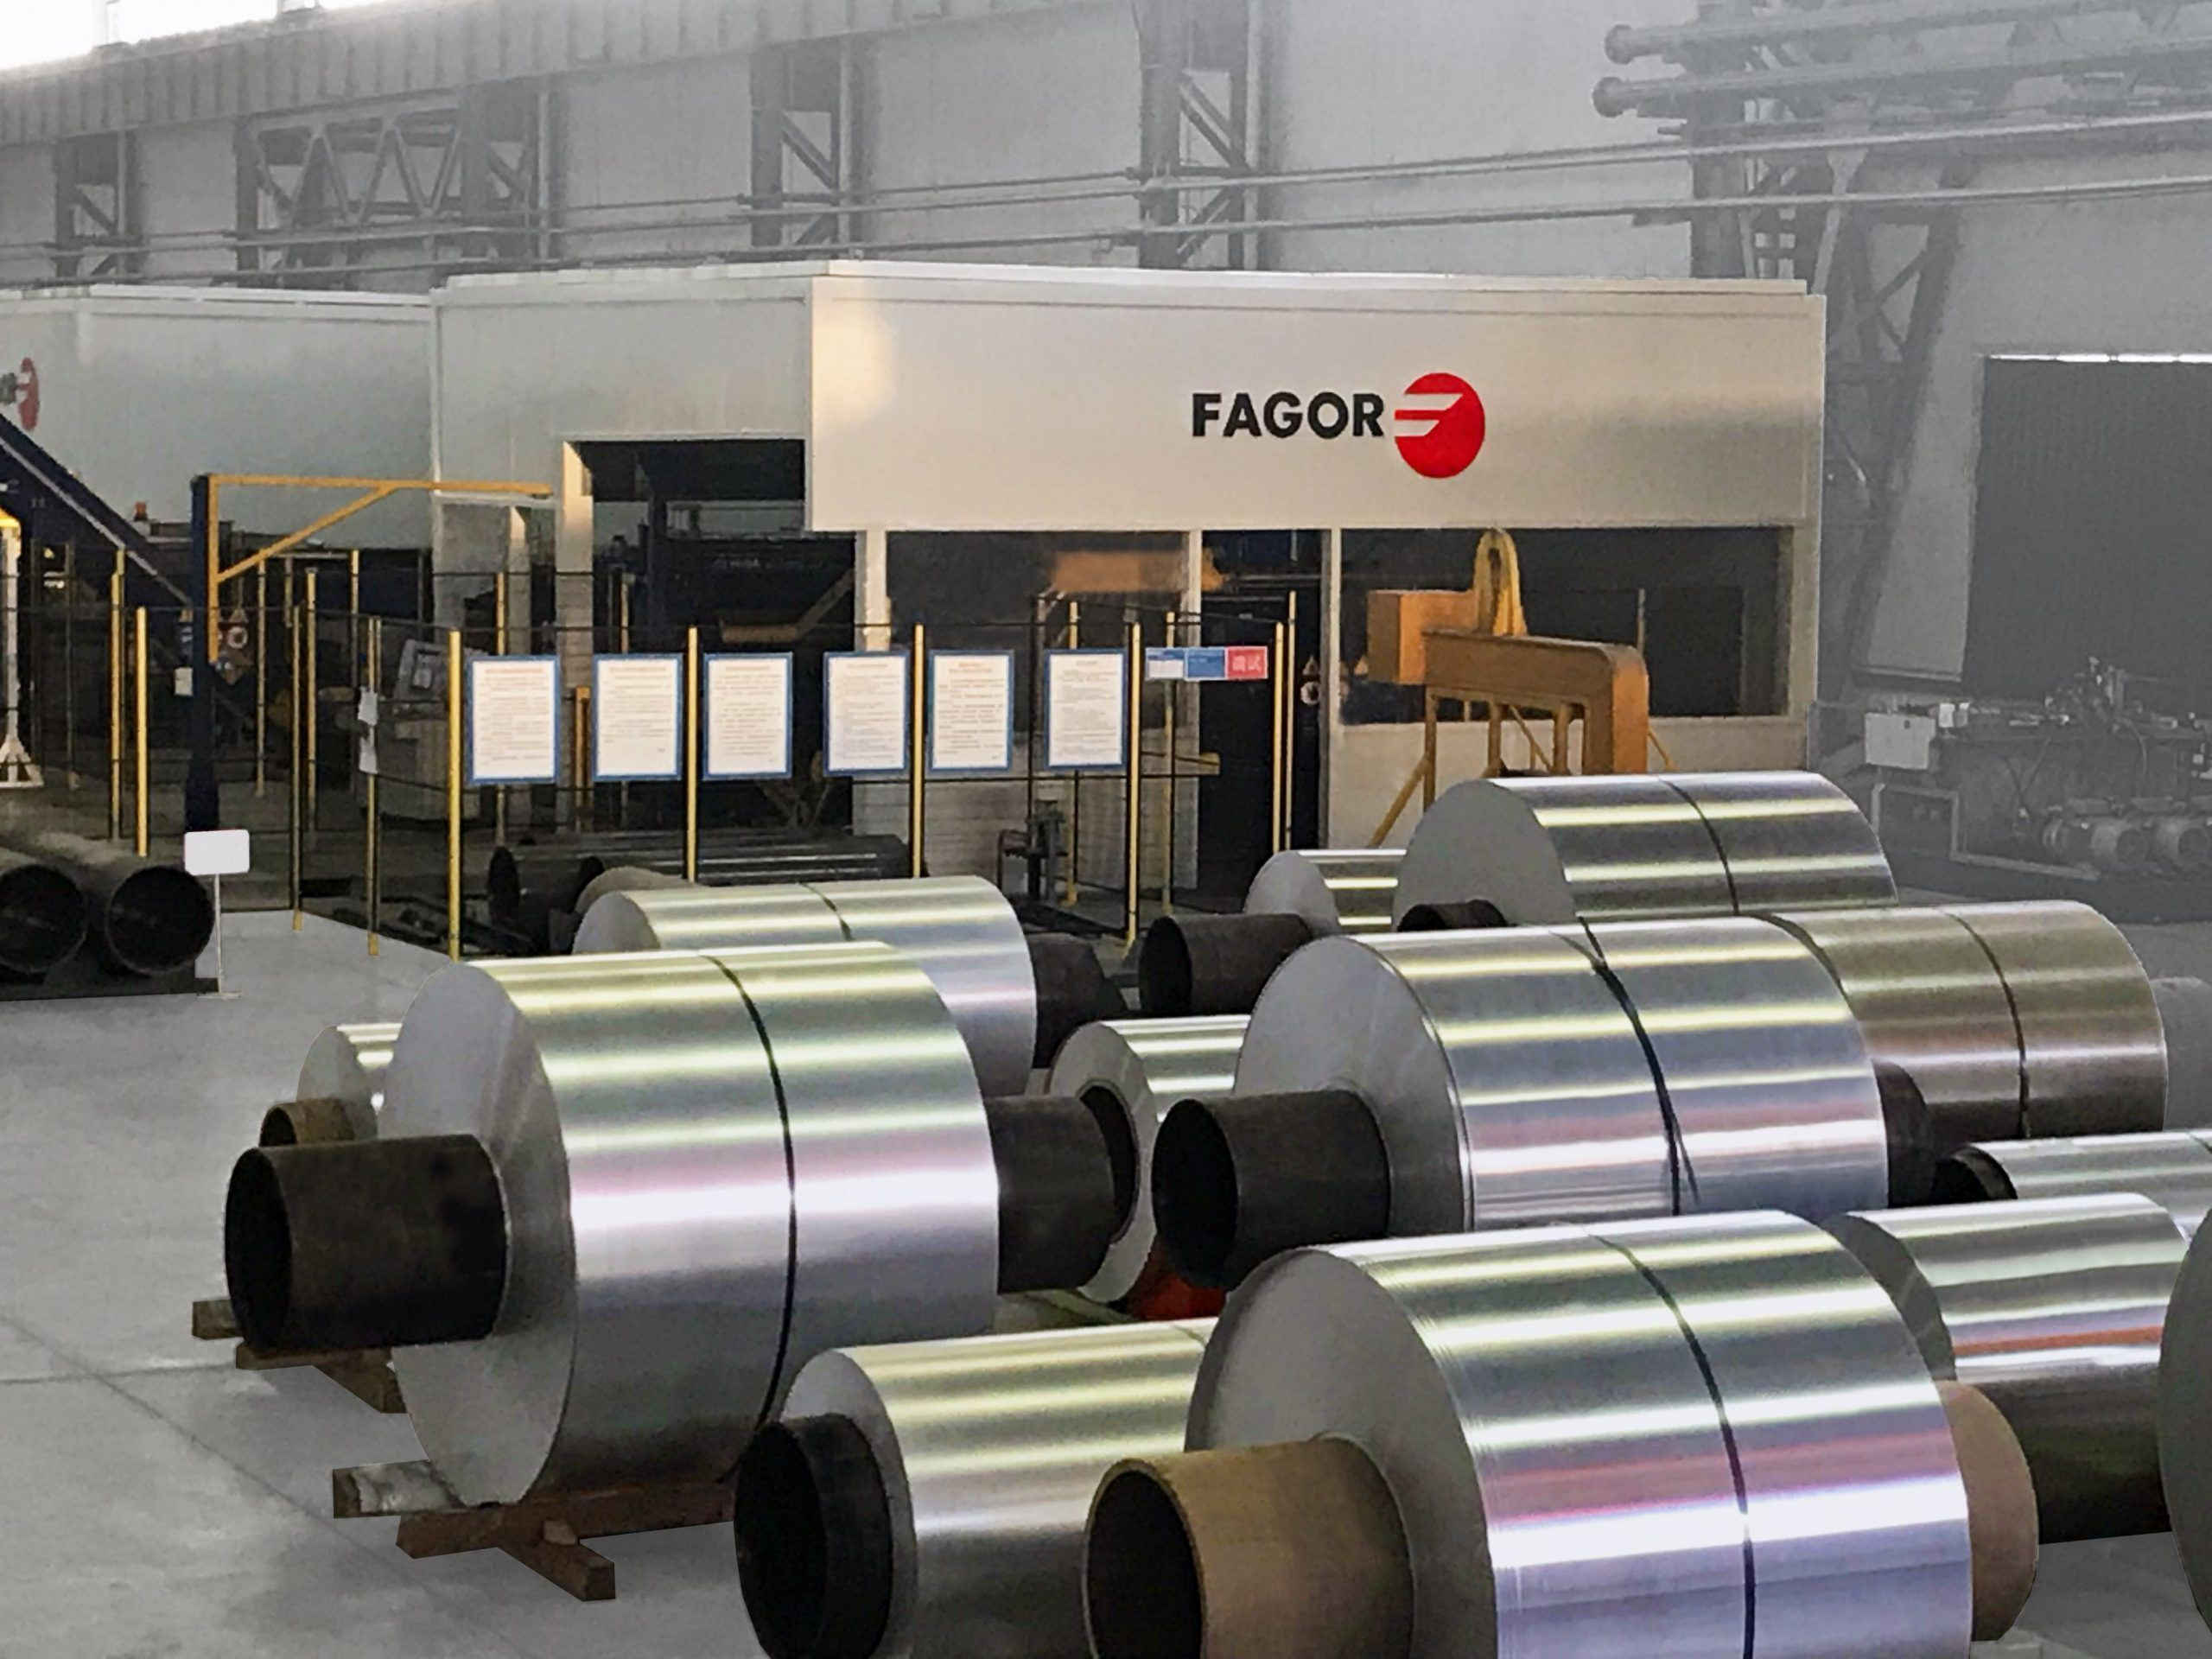 Fagor Arrasate event: FAGOR ARRASATE WILL PRESENT ITS LATEST DEVELOPMENTS IN LEVELLING, CUTTING AND STACKING ALUMINIUM AT THE ALUMINIUM CHINA TRADE FAIR